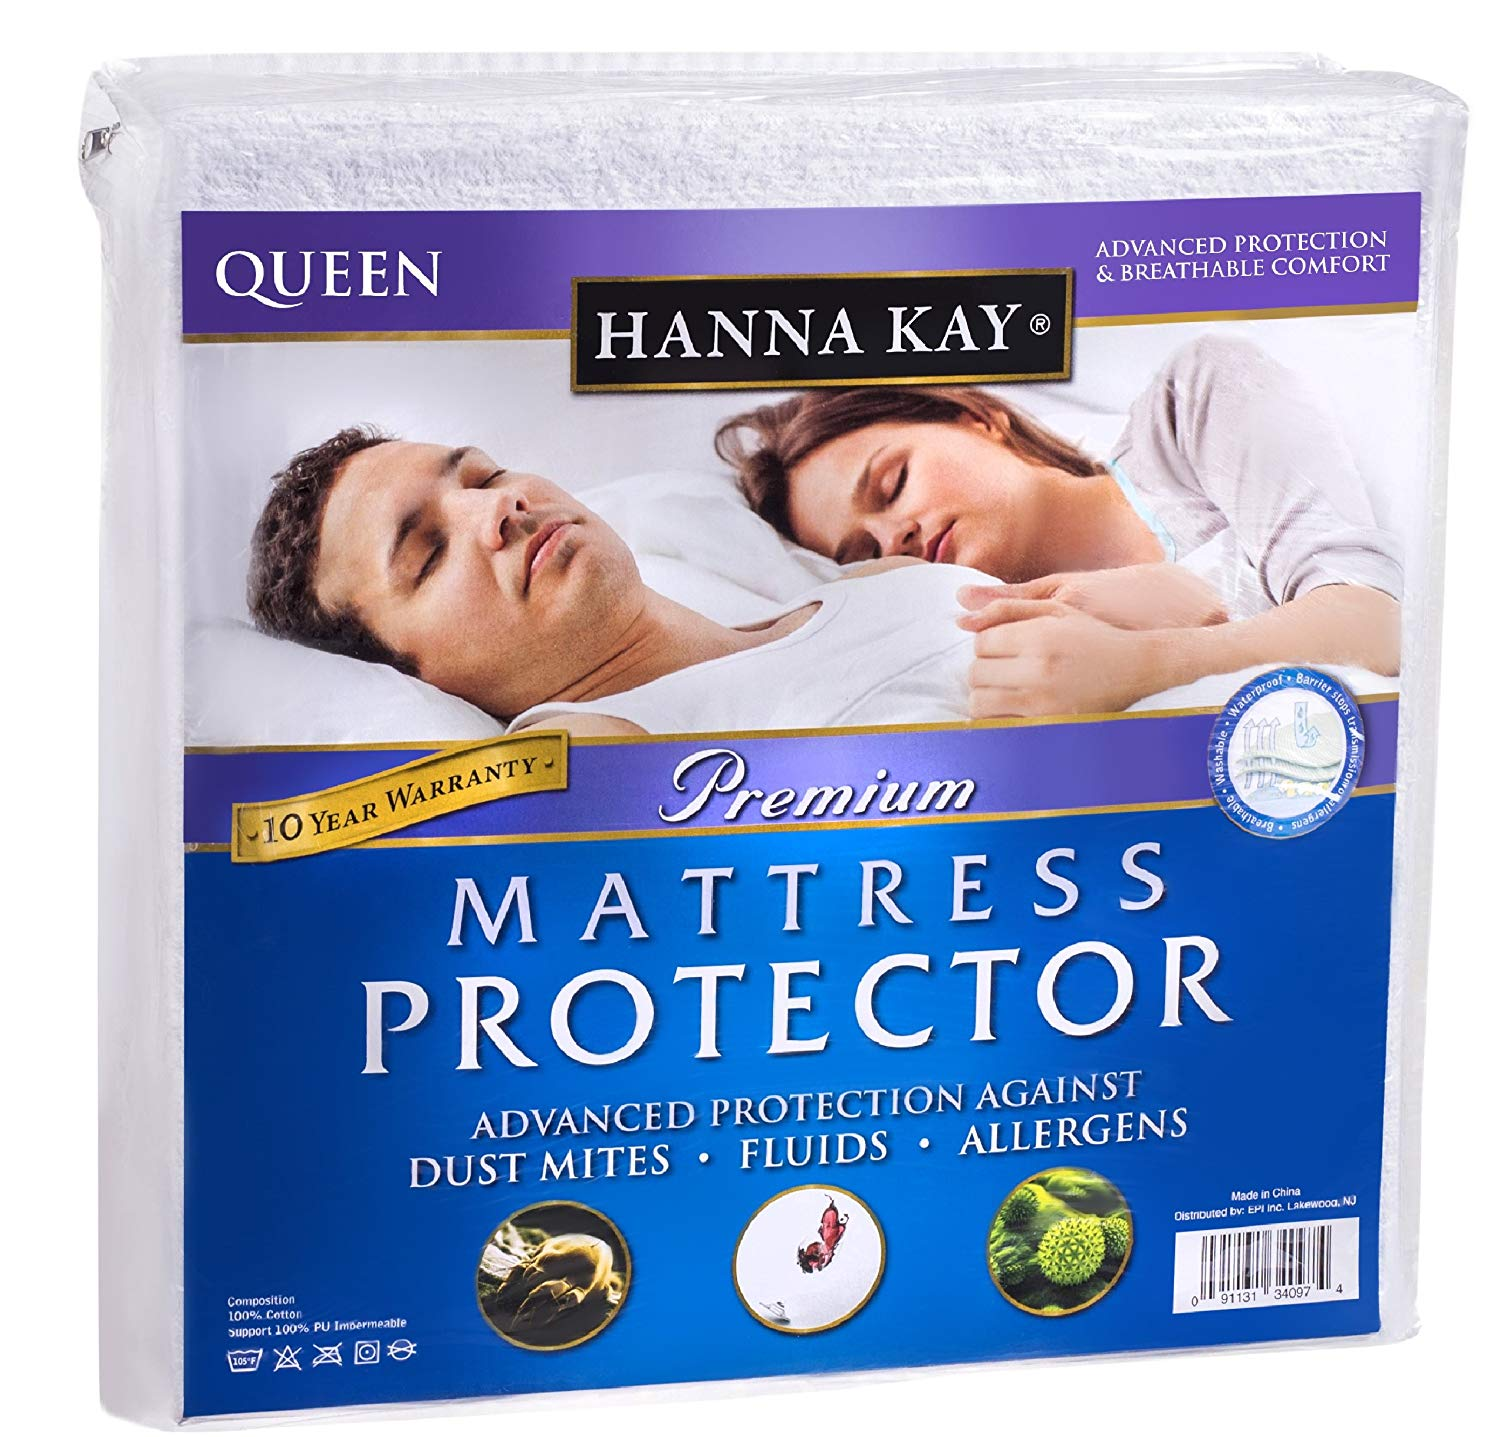 Hanna Kay Best Mattress Protectors Review by www.snoremagazine.com